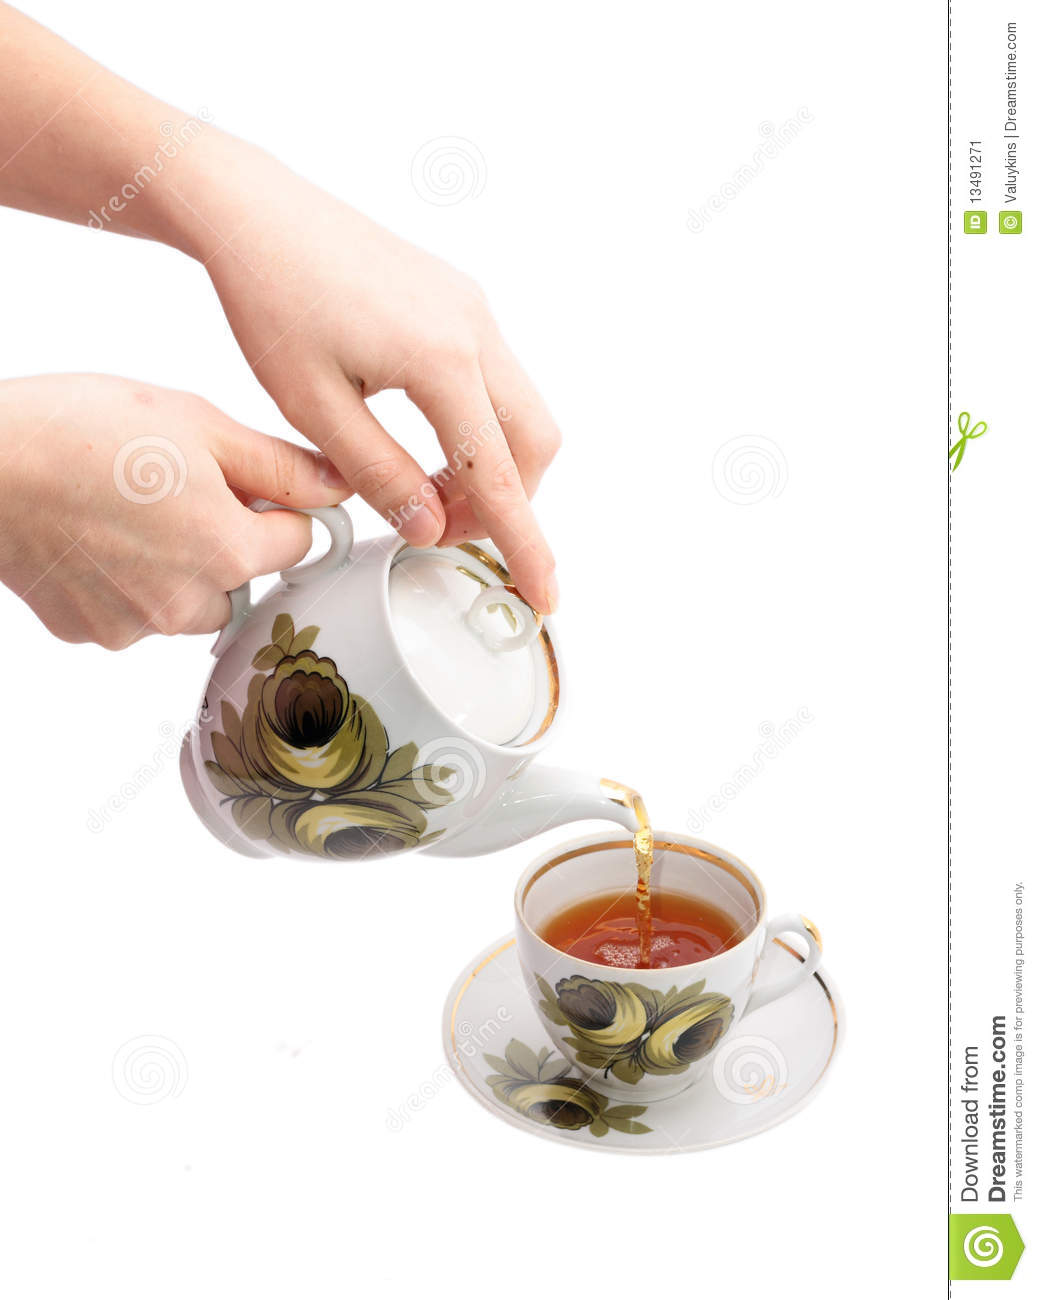 Pouring Tea Stock Image   Image  13491271